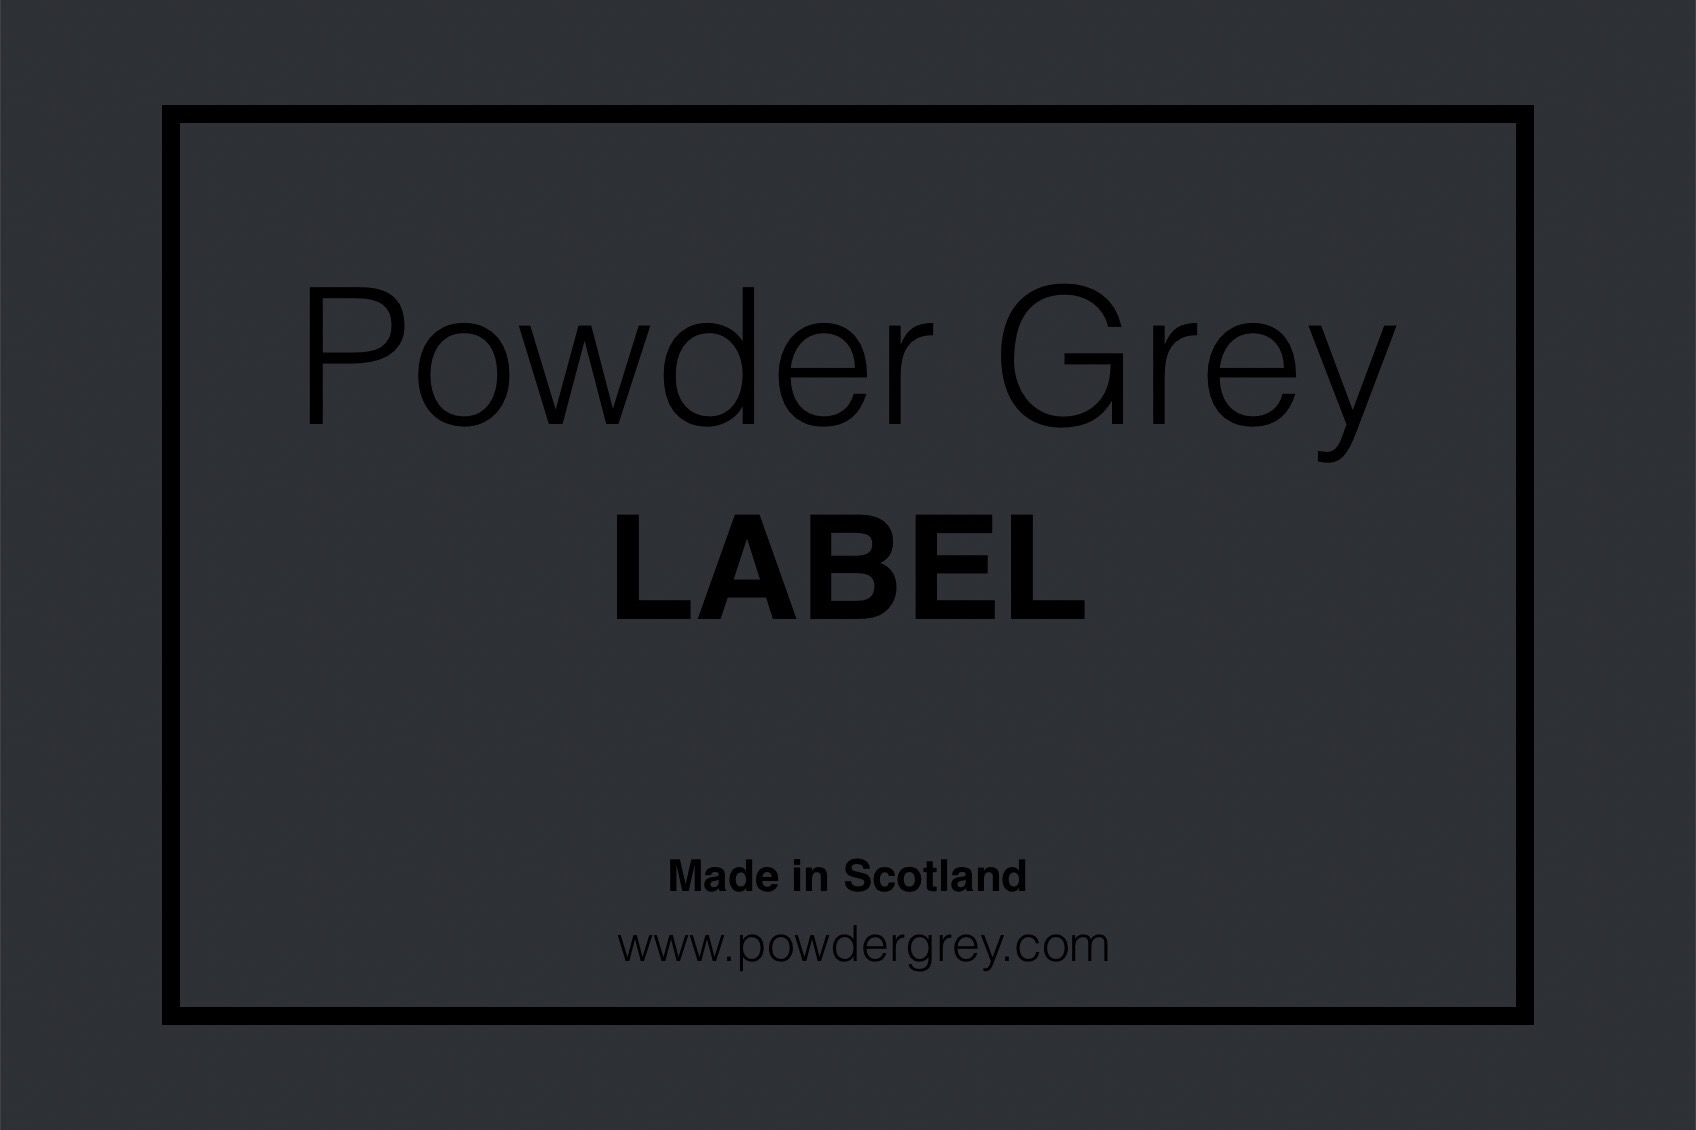 Label - We also support creatives and produce our own products via Powder Grey: Label. Find out more…